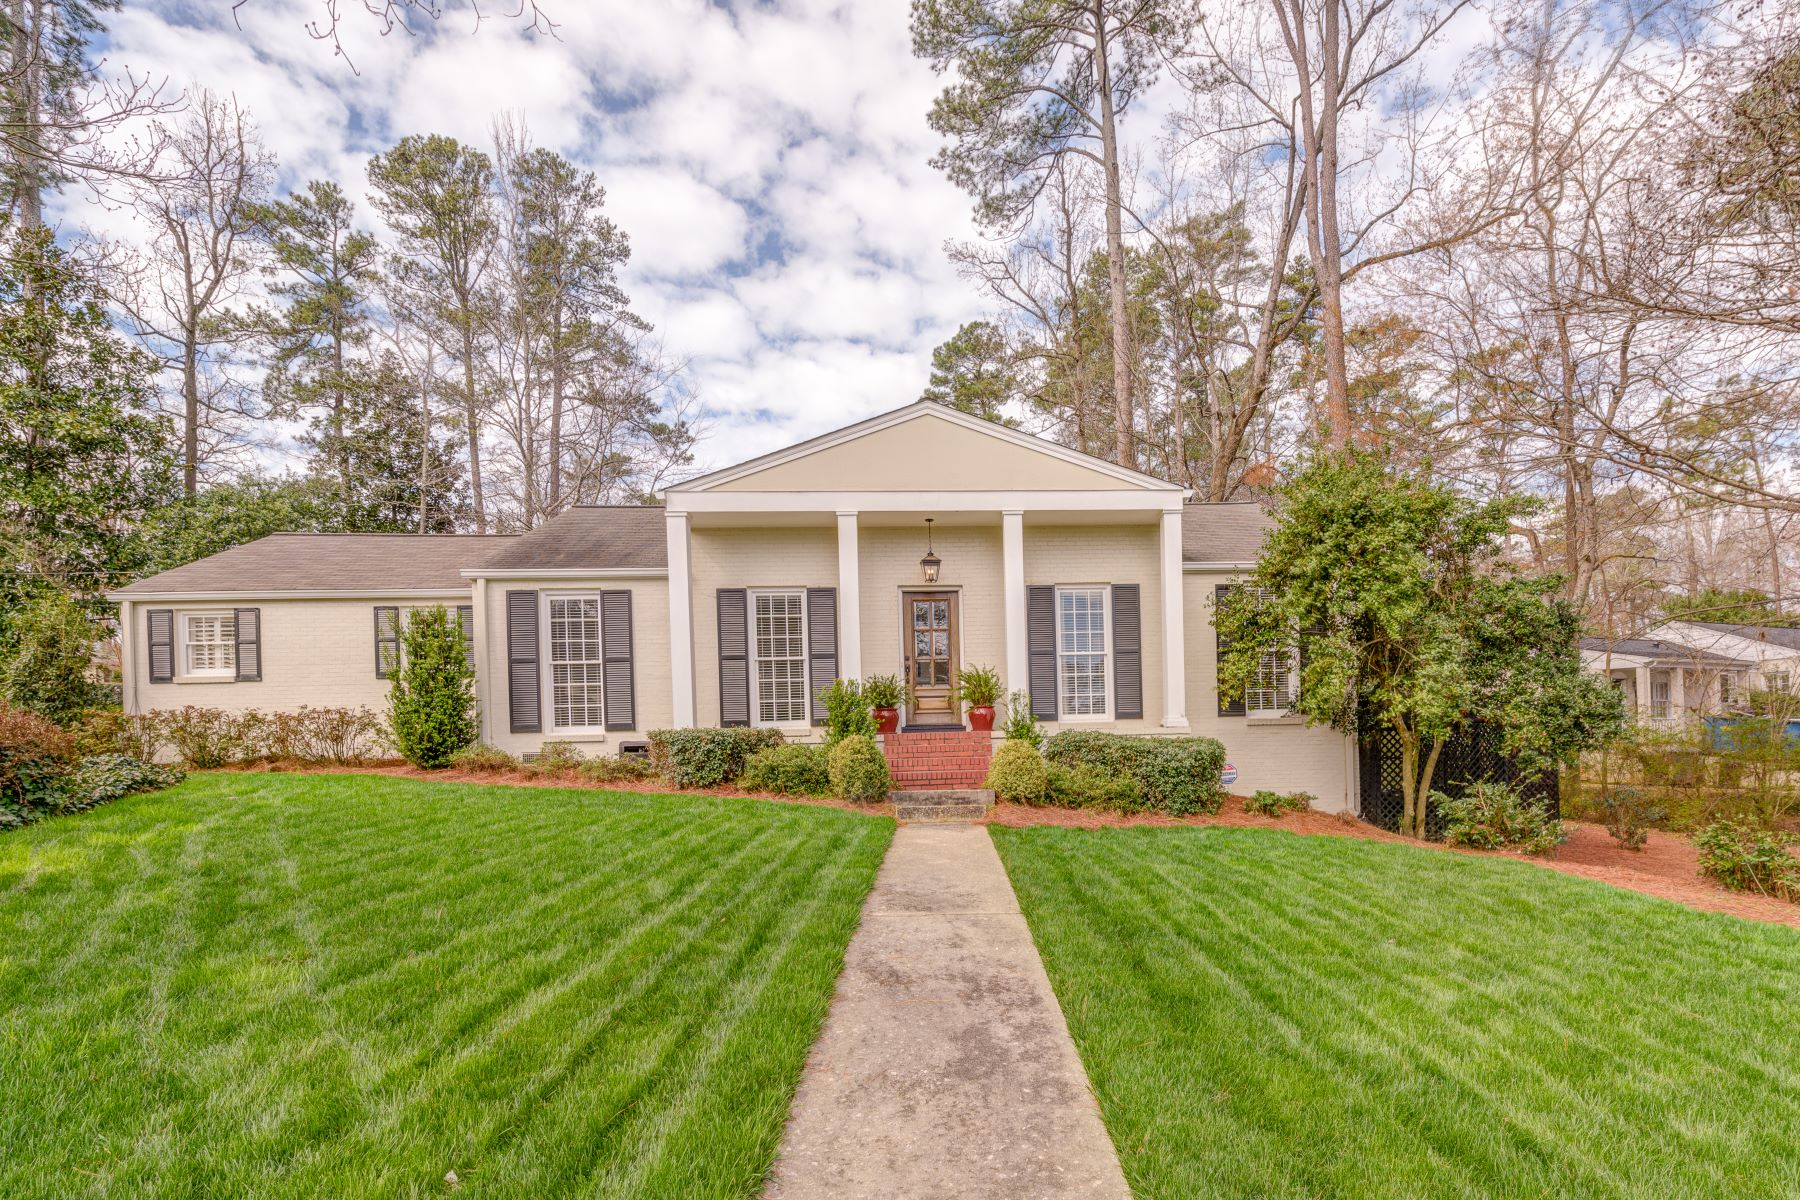 Single Family Home for Sale at Timeless Renovation In Charming Meadowbrook! 408 Meadowbrook Dr Atlanta, Georgia 30342 United States